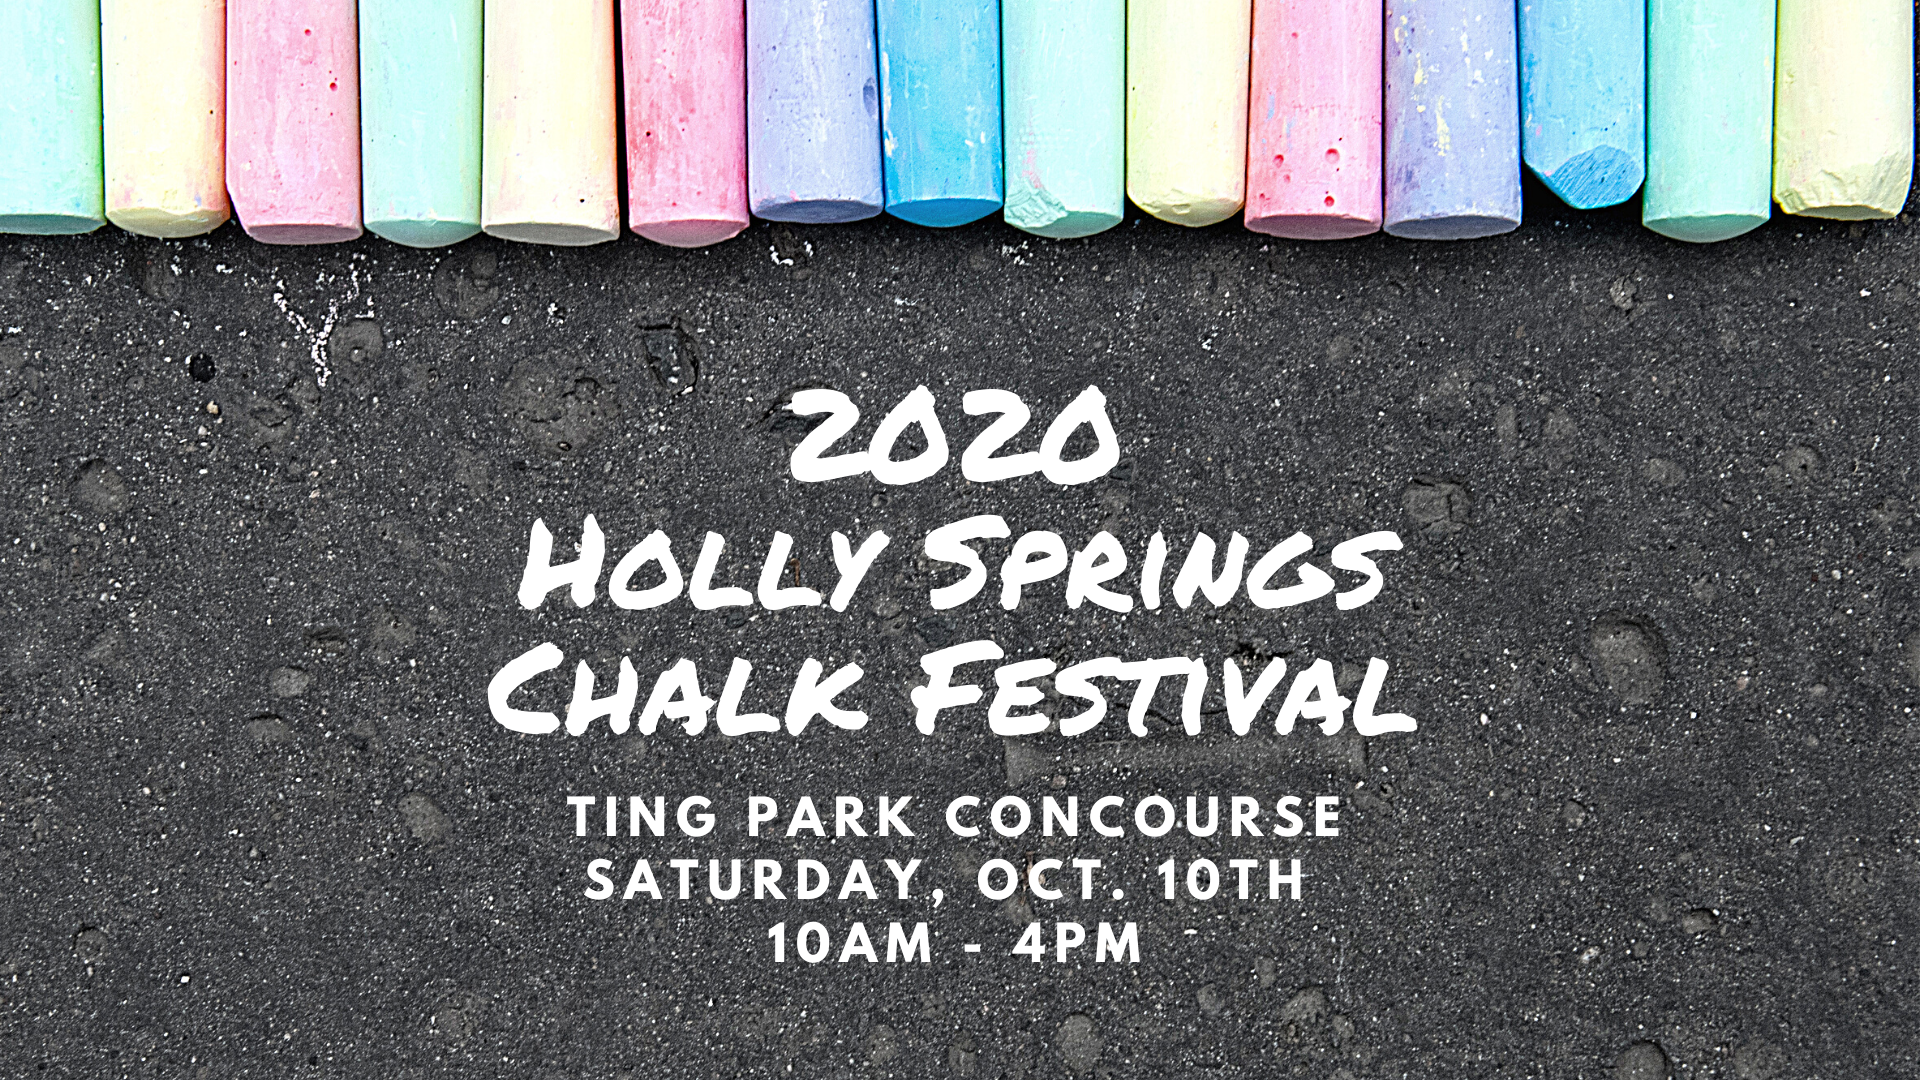 2020 Holly Springs Chalk Festival event cover